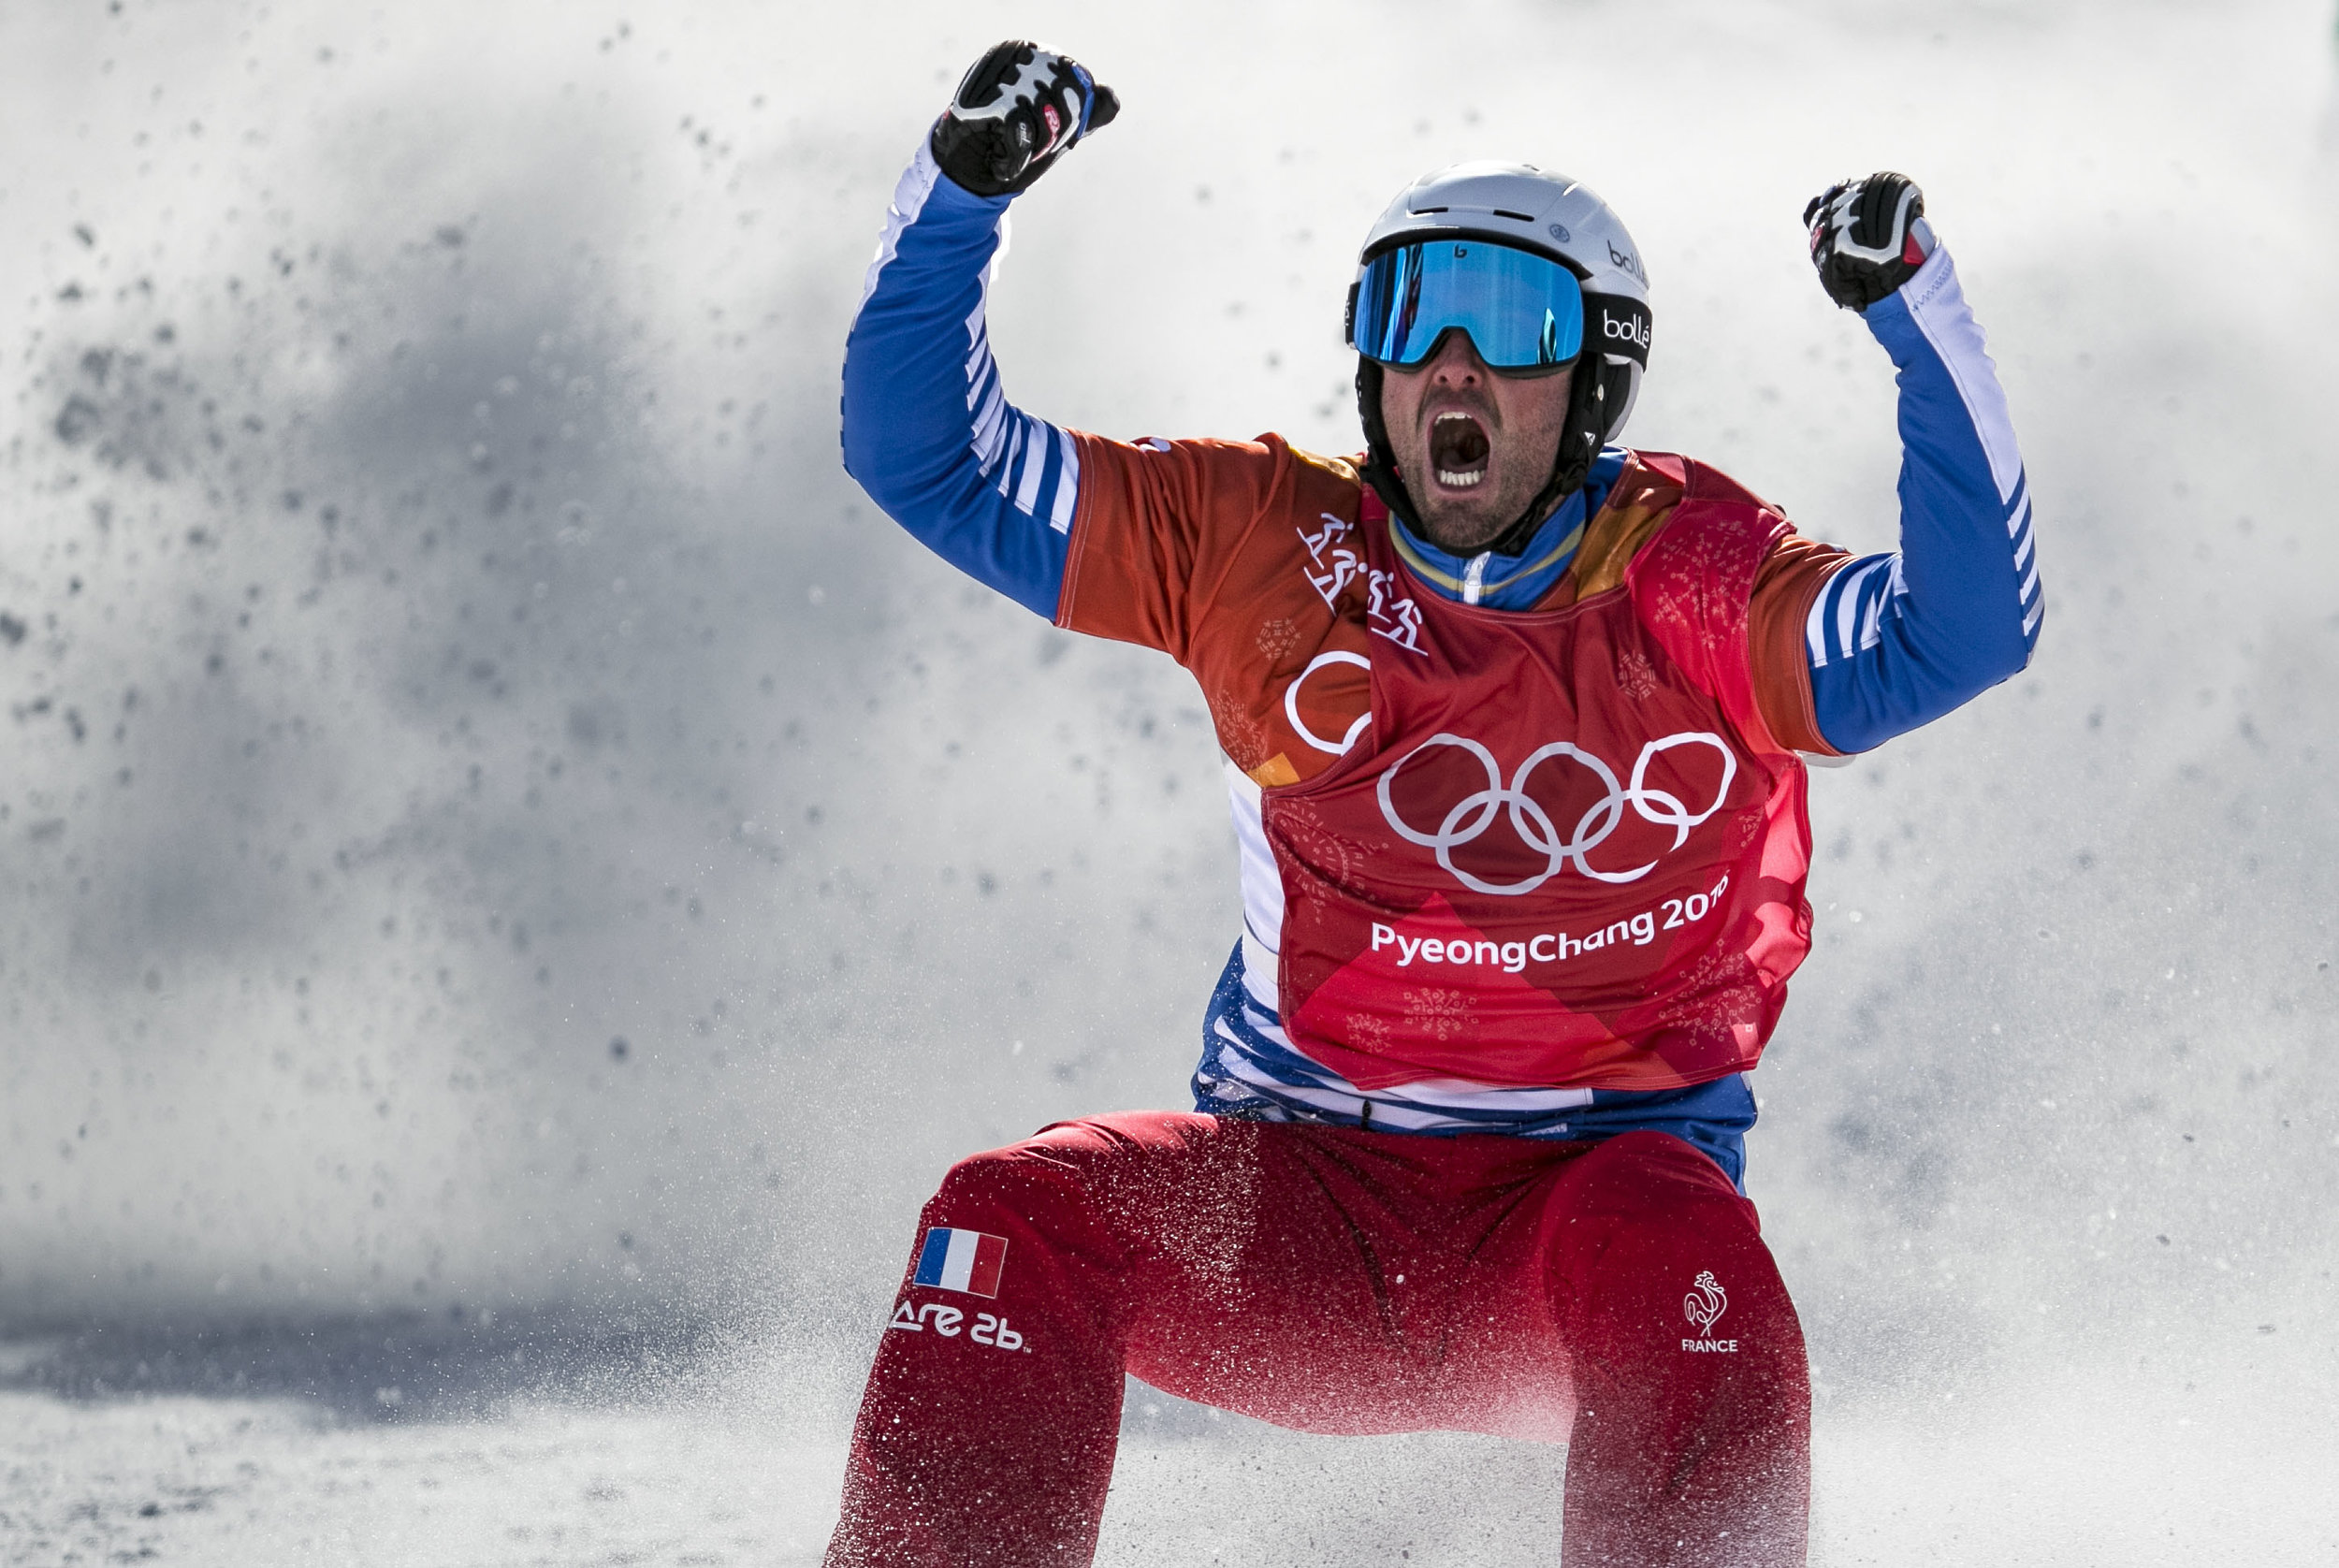 Back-to-back Olympic champion, France's Pierre Vaultier, roars in excitement after securing his gold title in Men's Snowboard Cross, Feb. 15, Phoenix Snow Park. The motocross like mash up of six snowboarders and a mix of obstacle courses, the Olympic event Snowboard Cross features a little bit of everything and Vaultier continues to hold the gold.